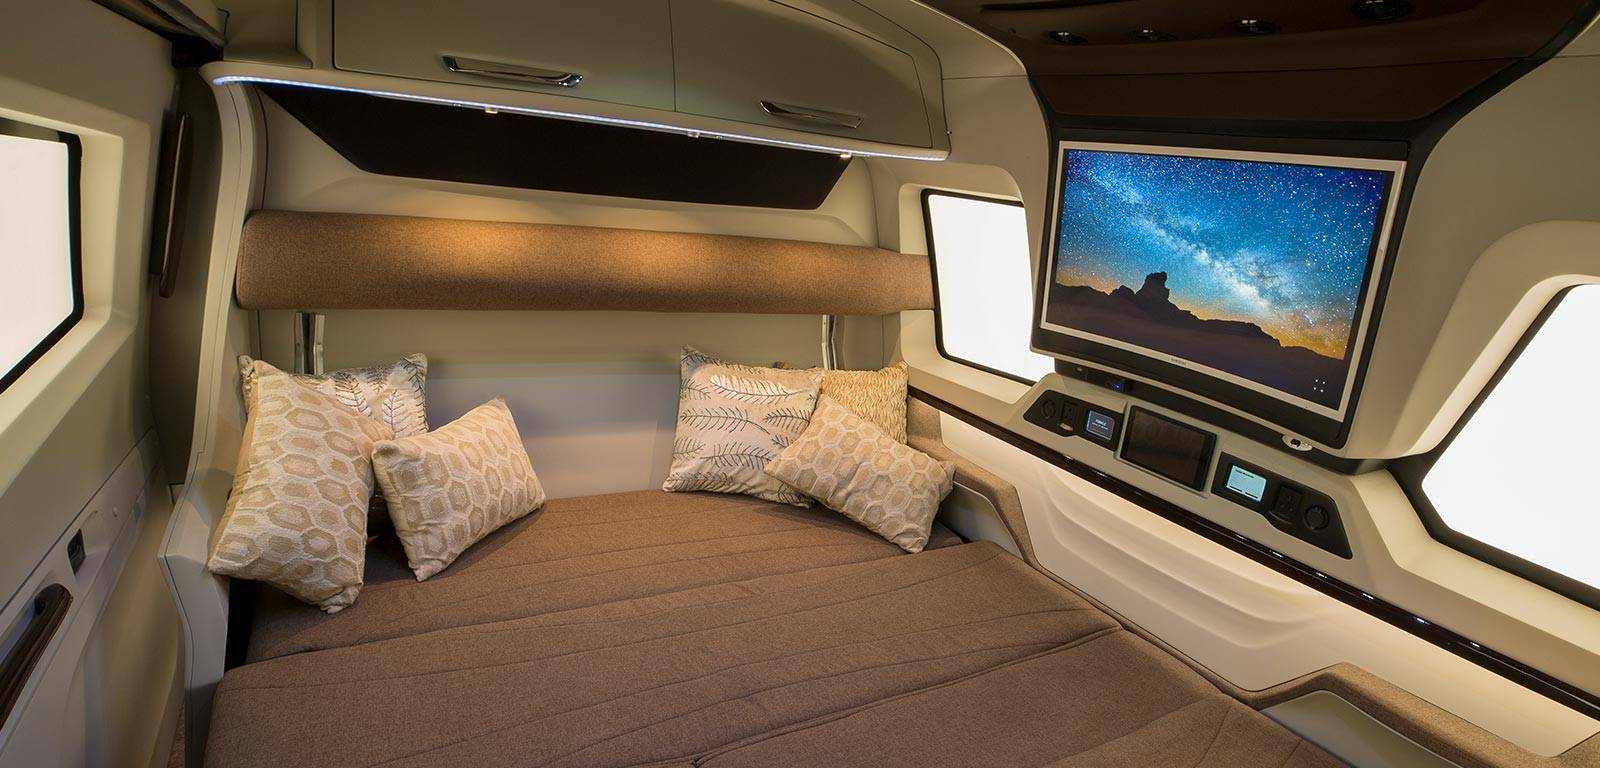 Luxury Rv Expands To Reveal Jet Like Interiors Curbed